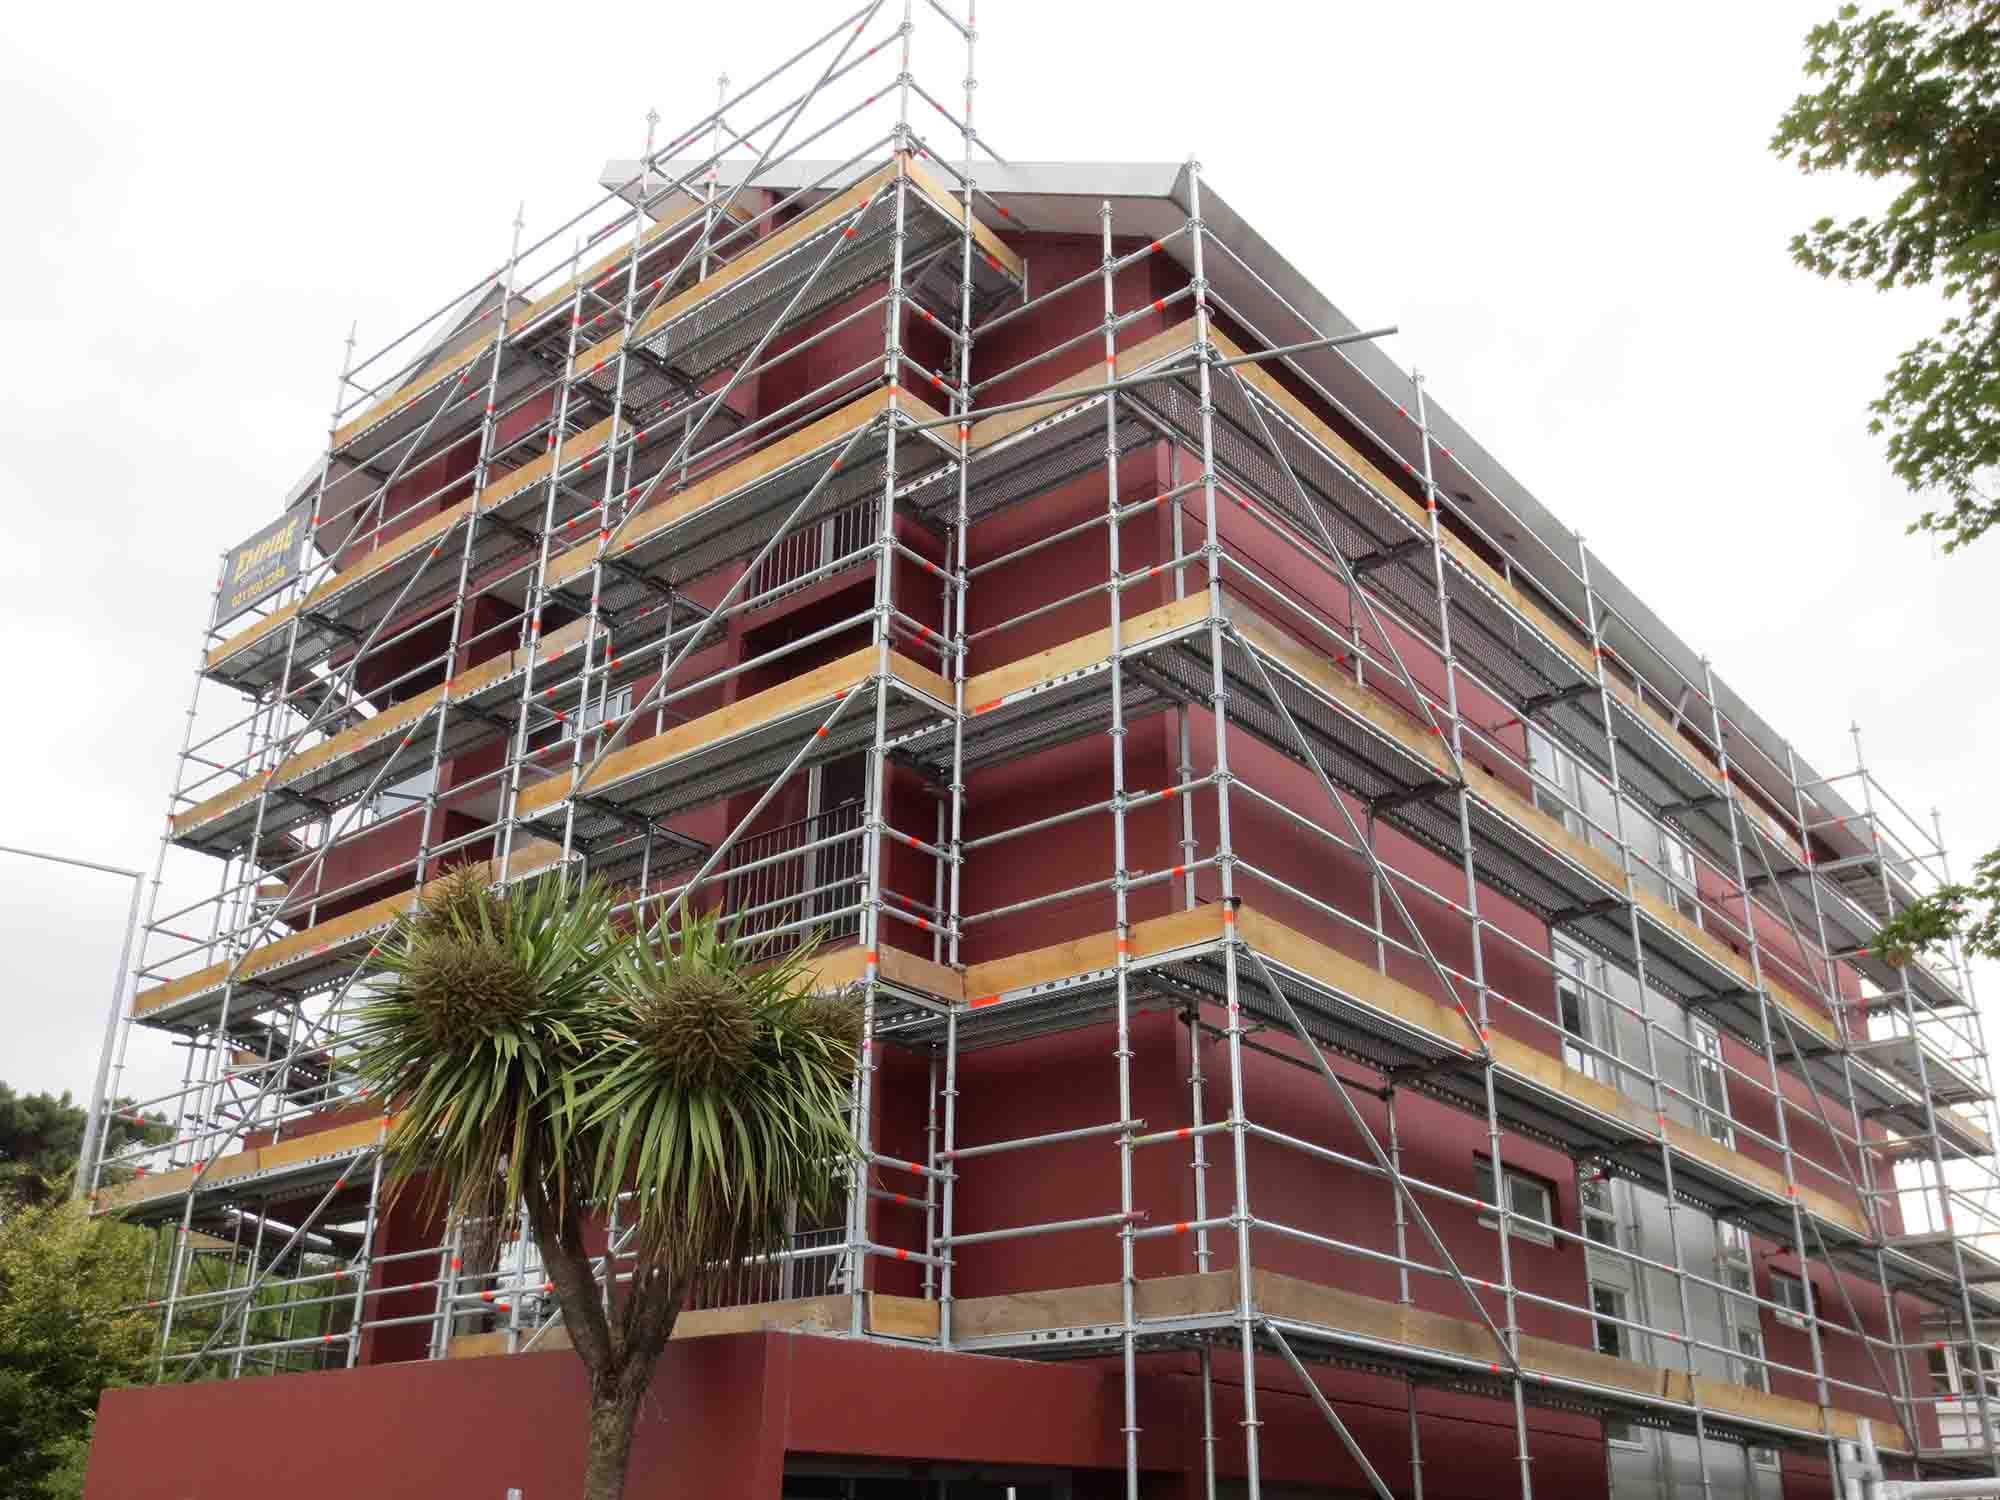 Scaffolding with no disruptions to passing traffic, pedestrians or apartment residents.